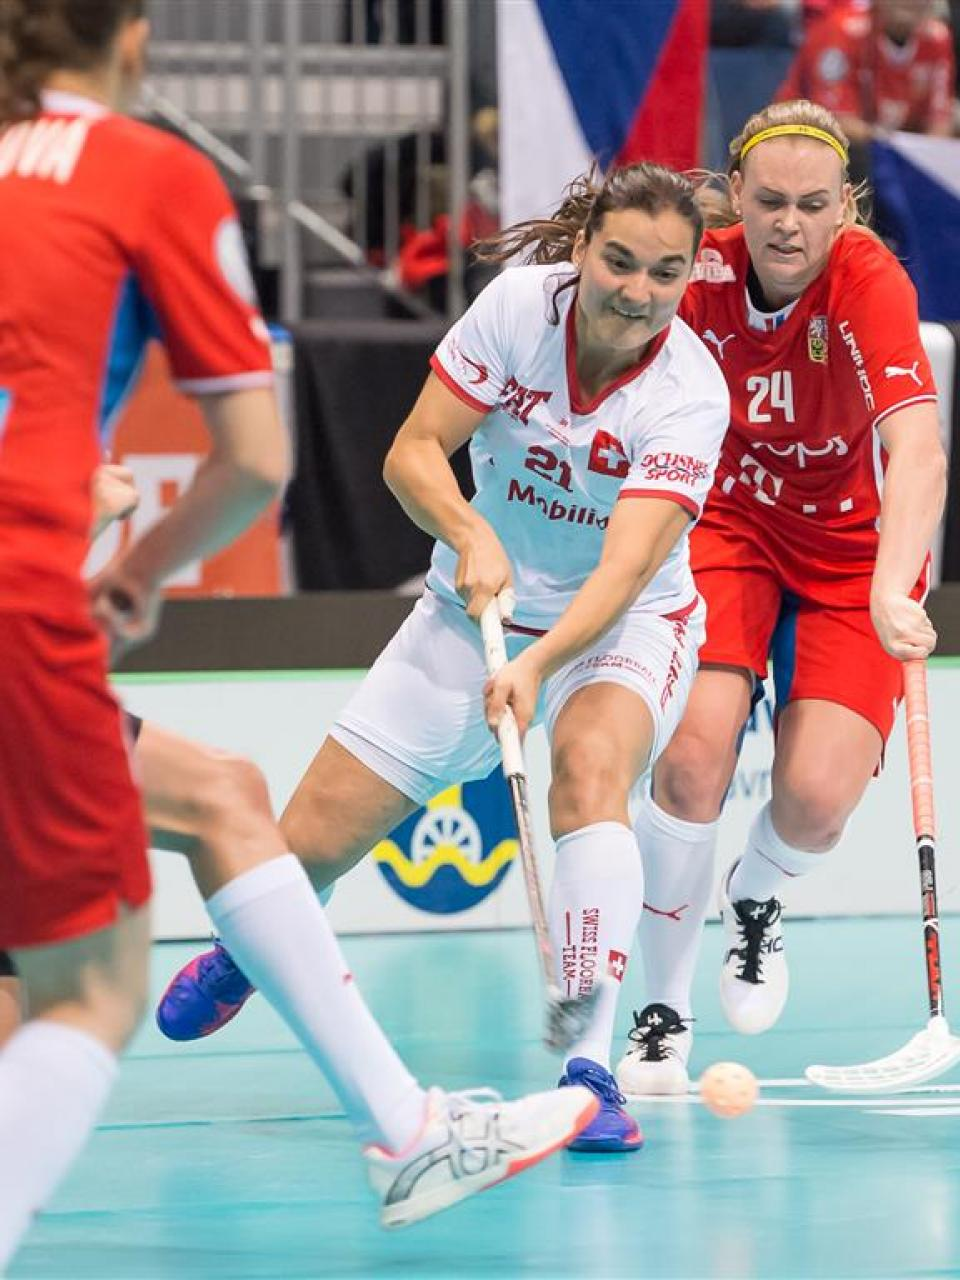 The 2019 Women's World Floorball Championships will take place in Neuchâtel